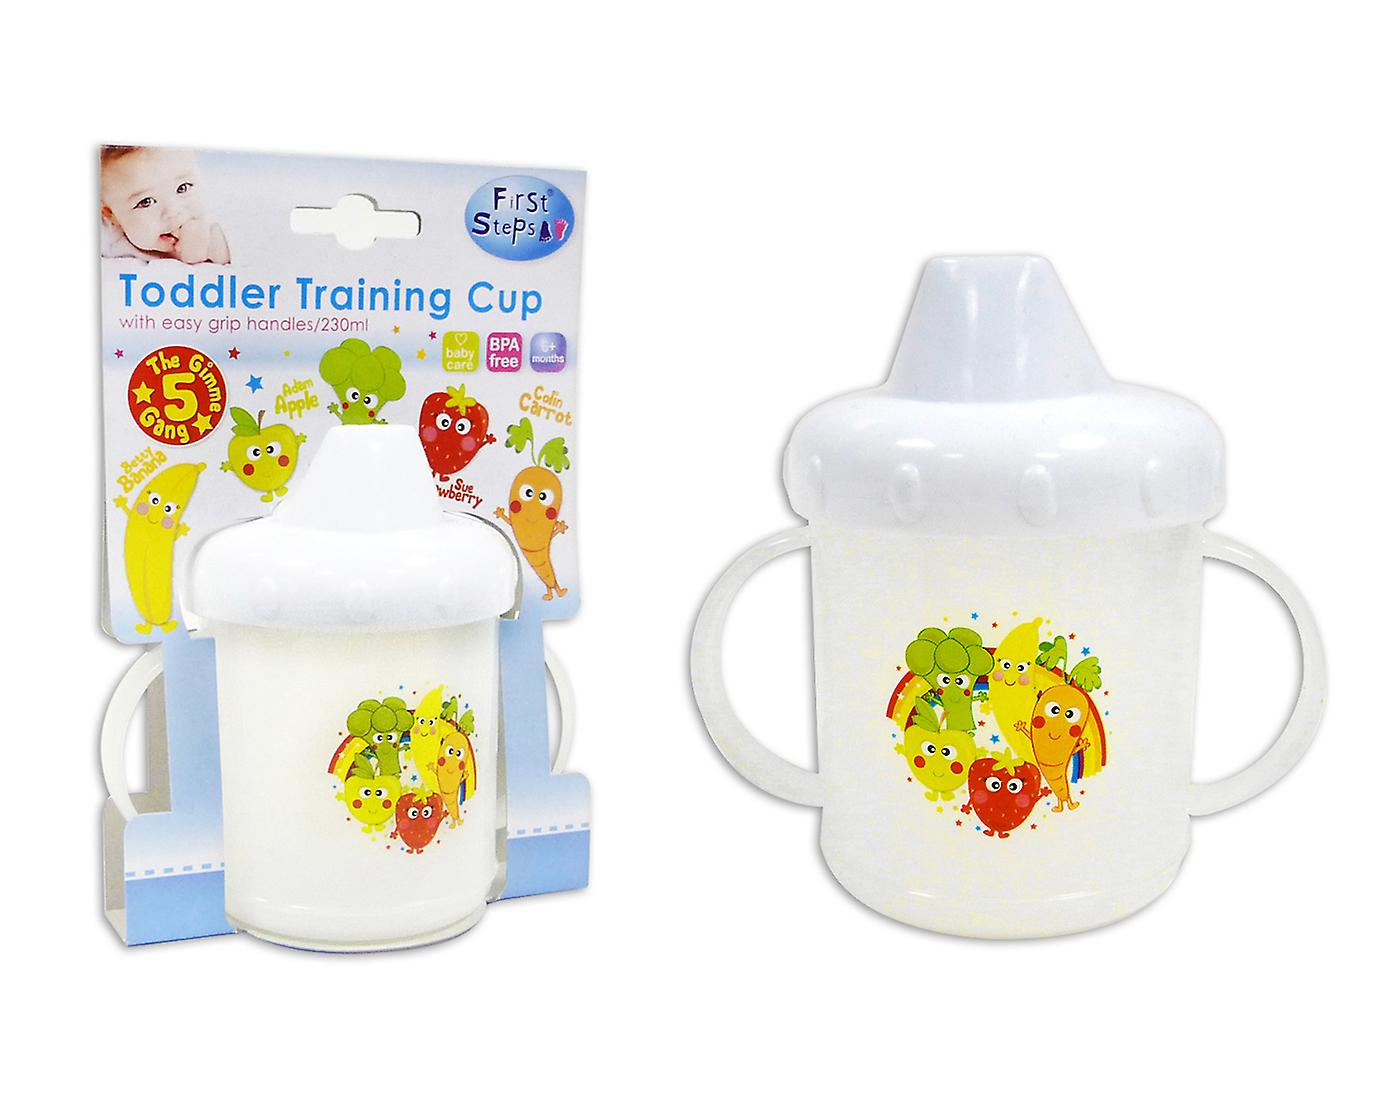 First Steps Toddler Training Cup with Easy Grip Handles and Cute Design